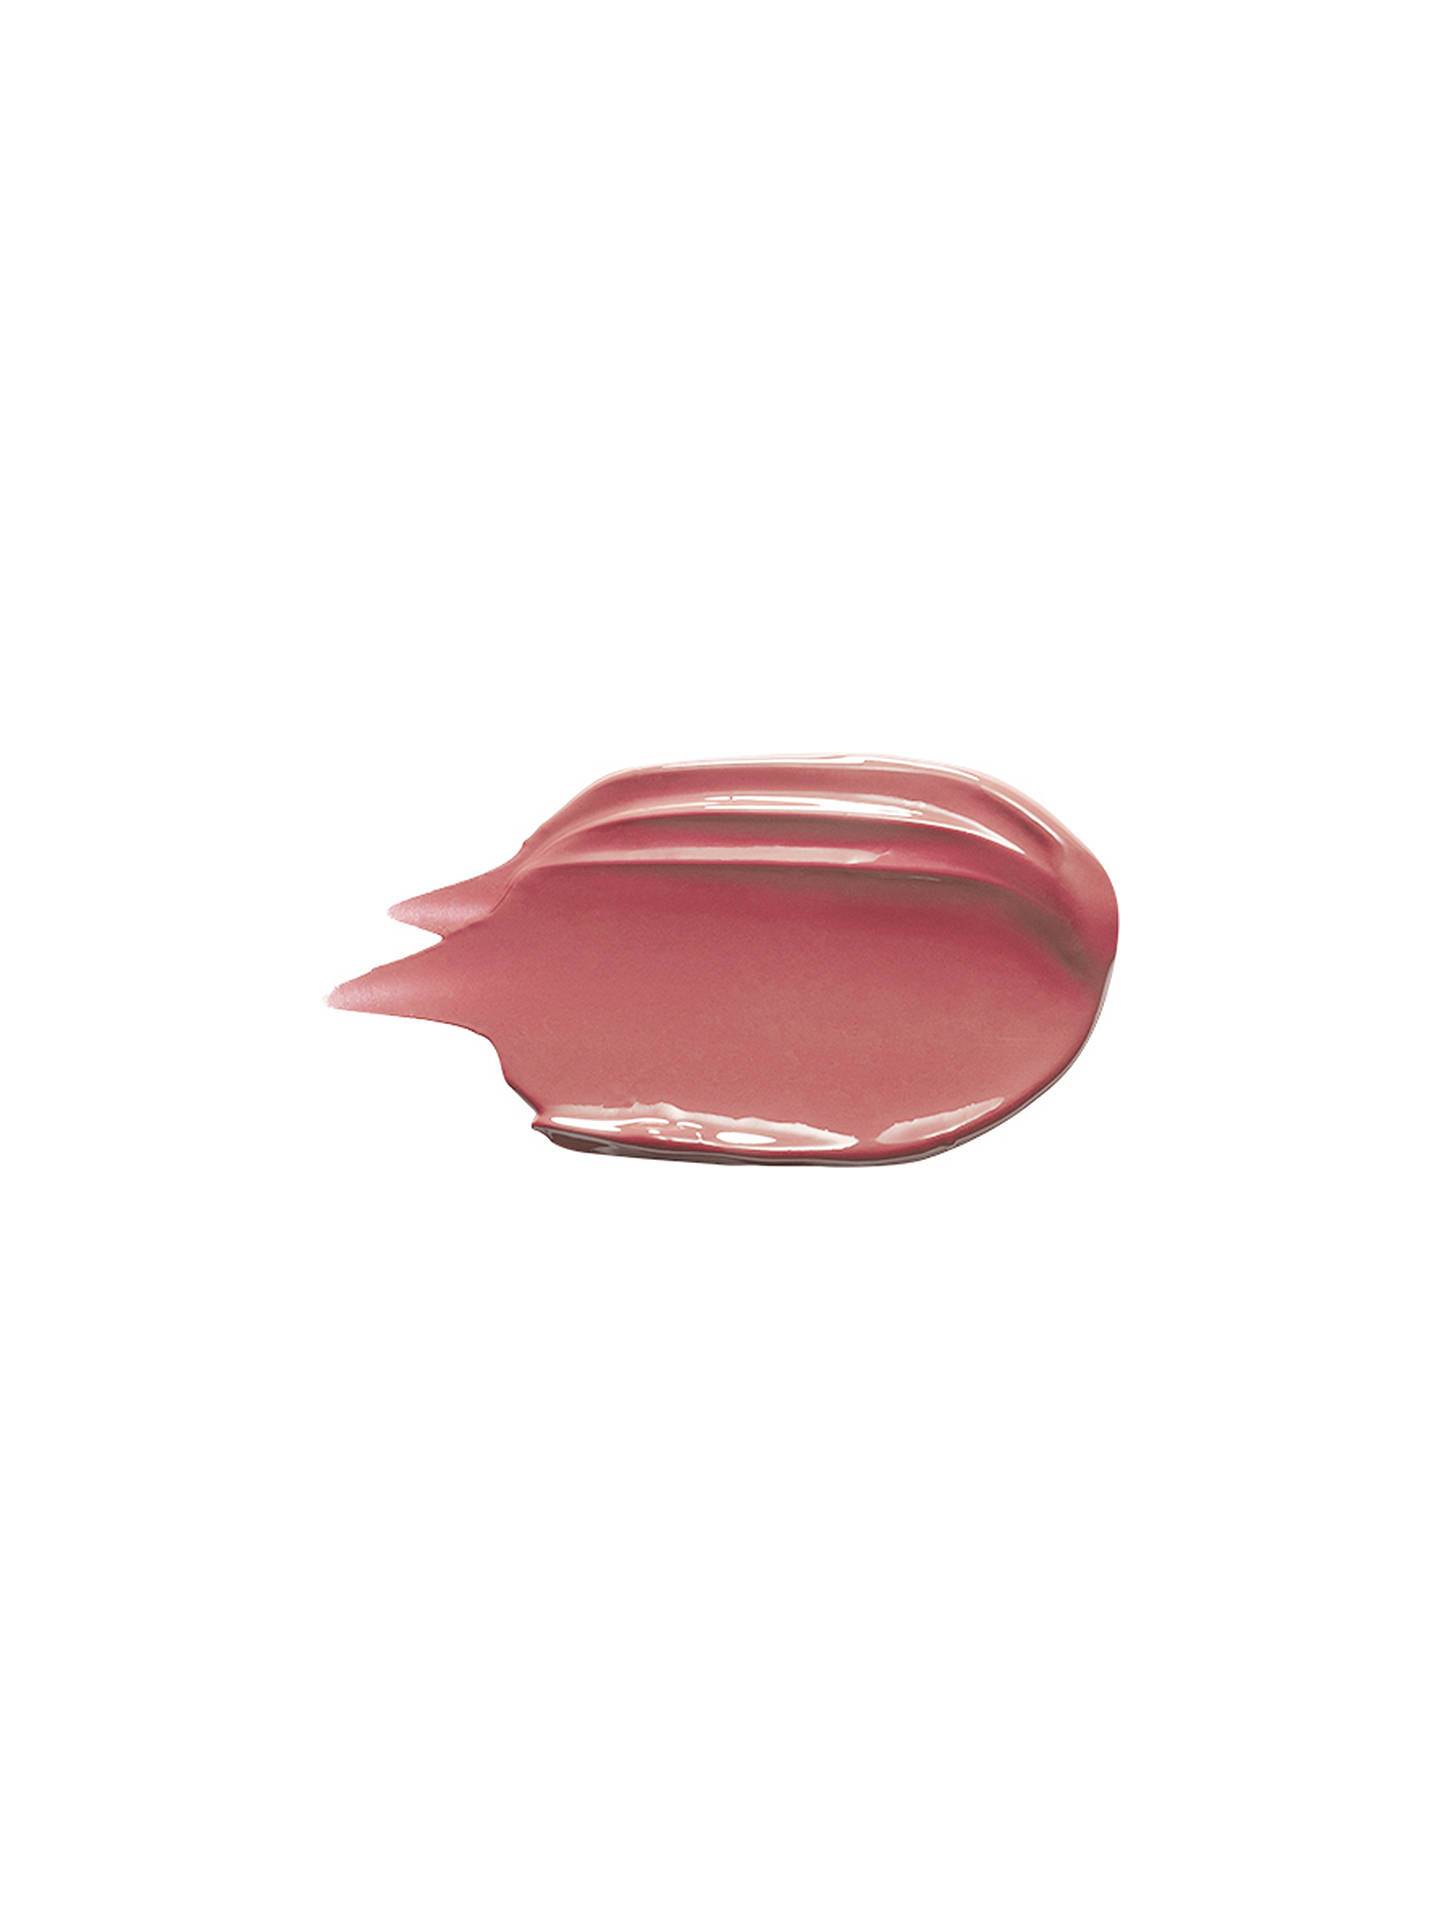 BuyShiseido VisionAiry Gel Lipstick, 202 Bullet Train Online at johnlewis.com